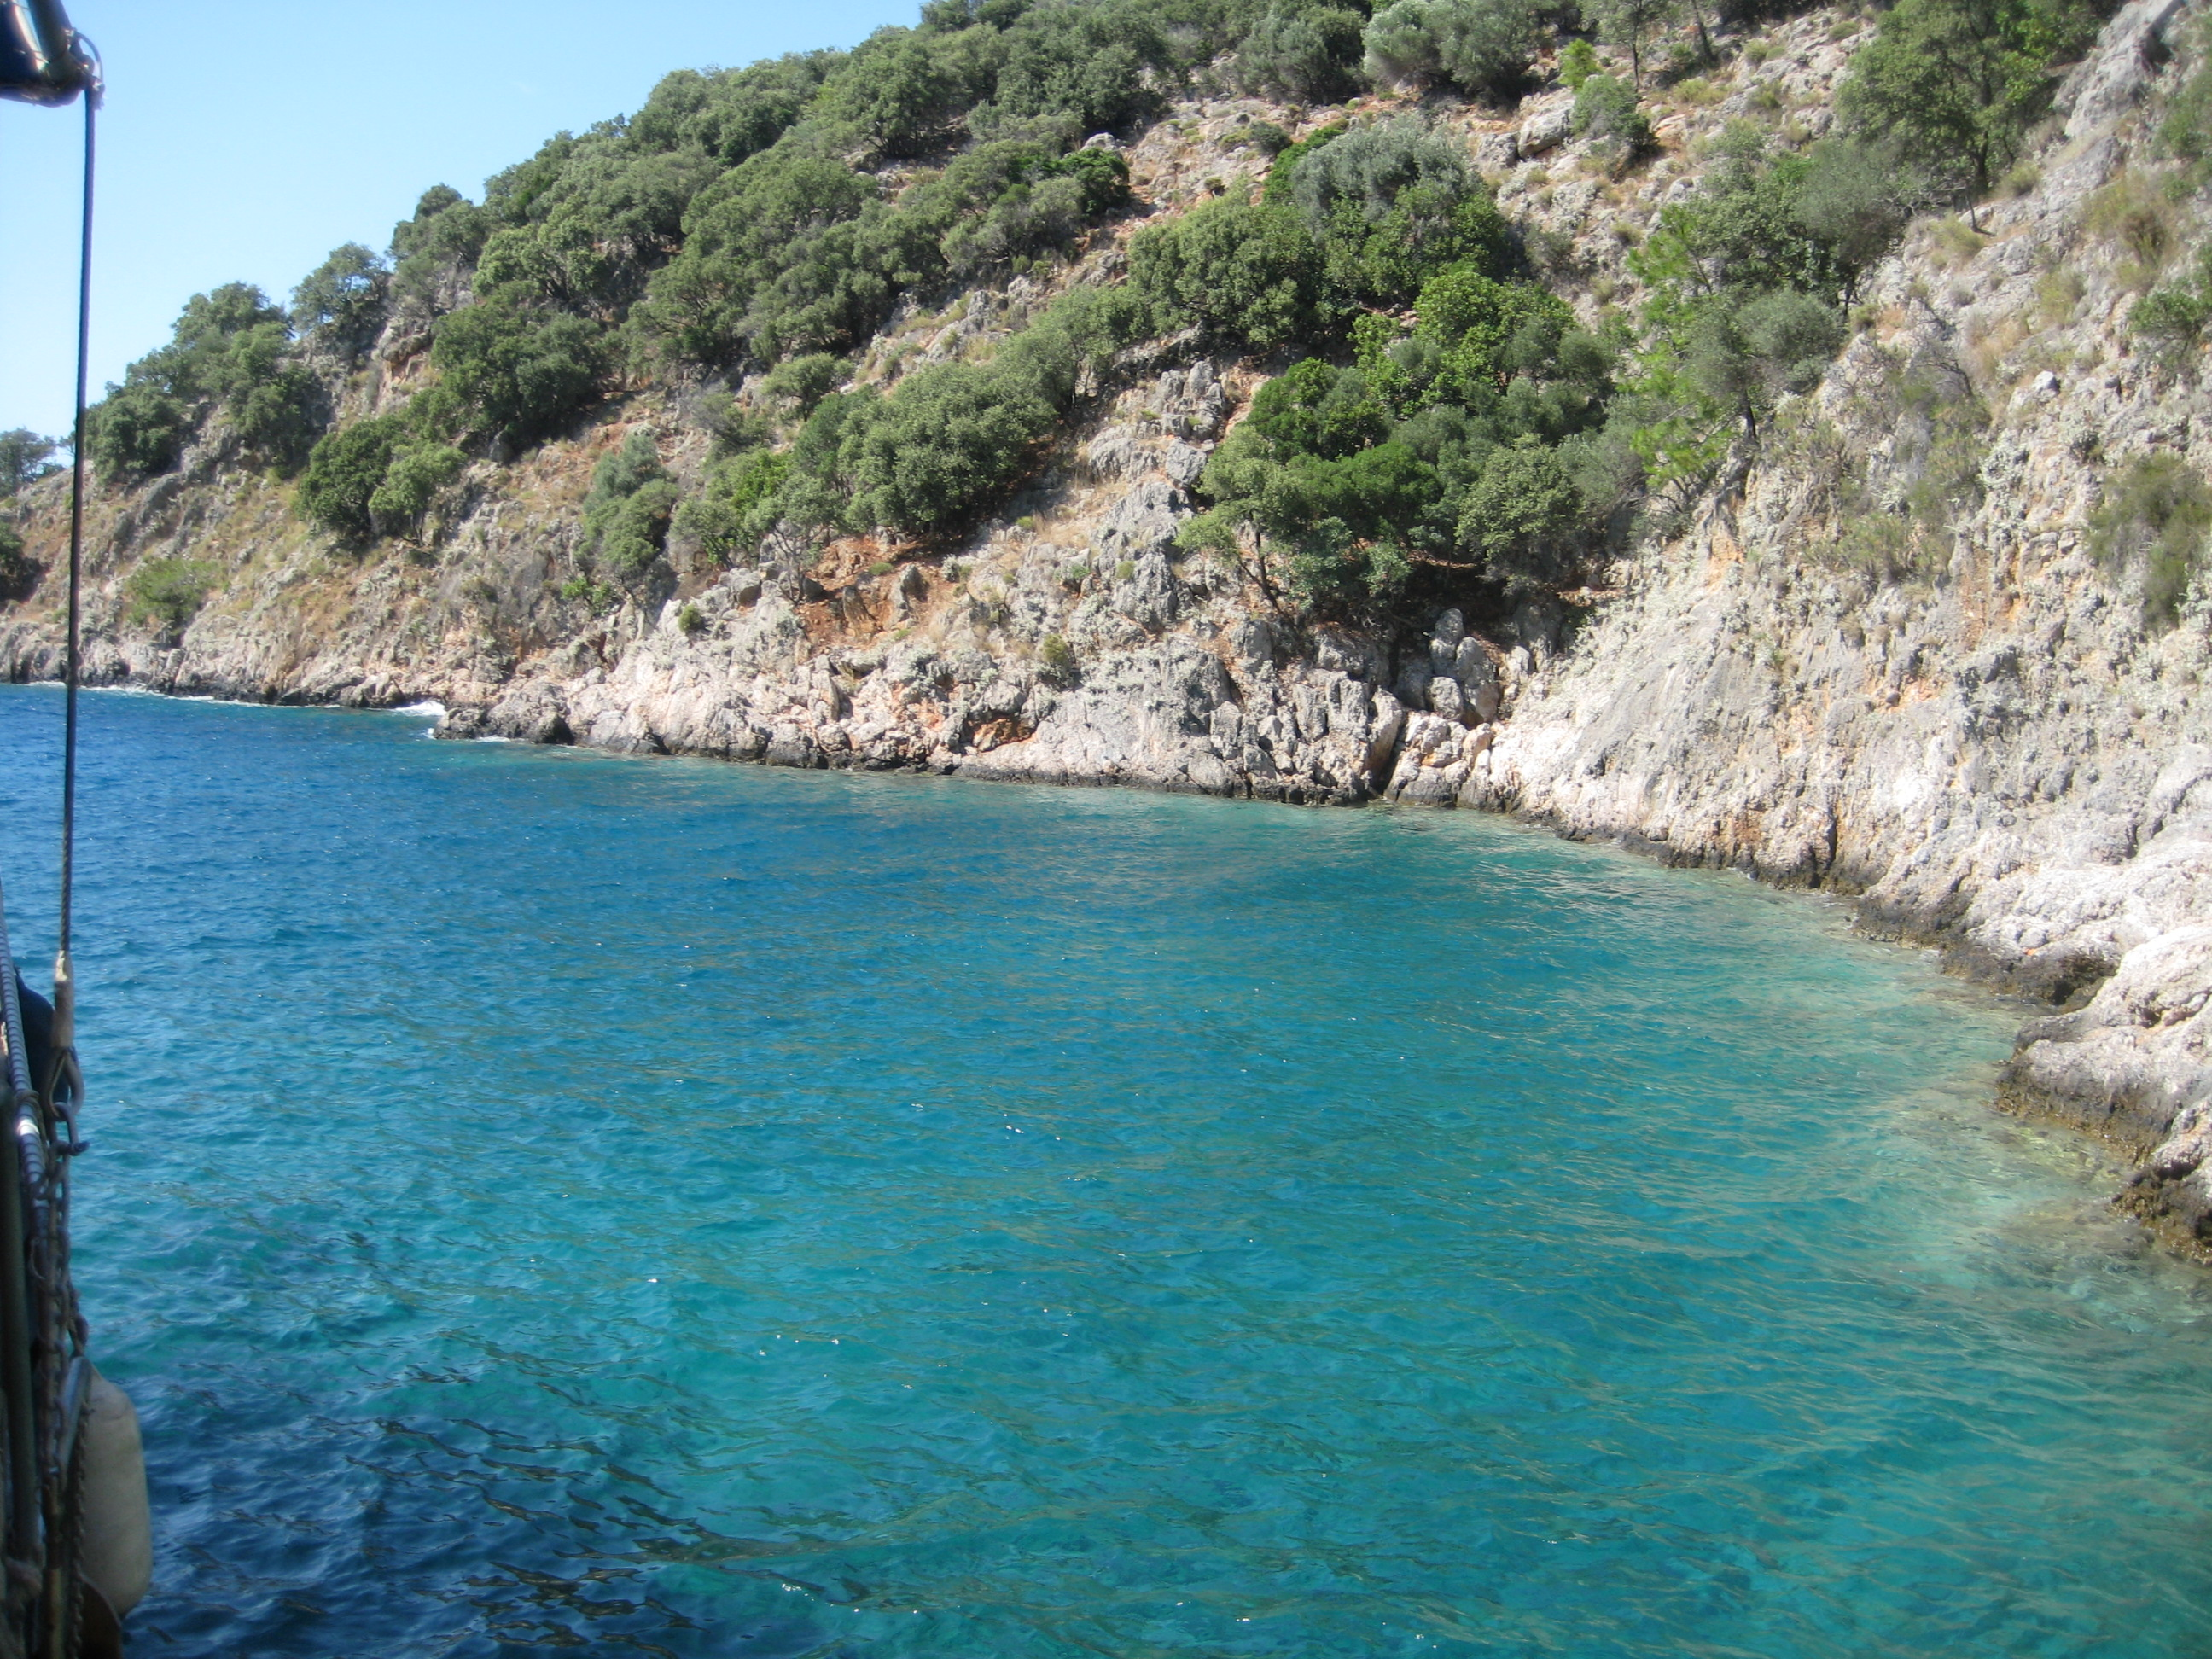 Just one of many gorgeous coves along the coast where we dropped anchor.